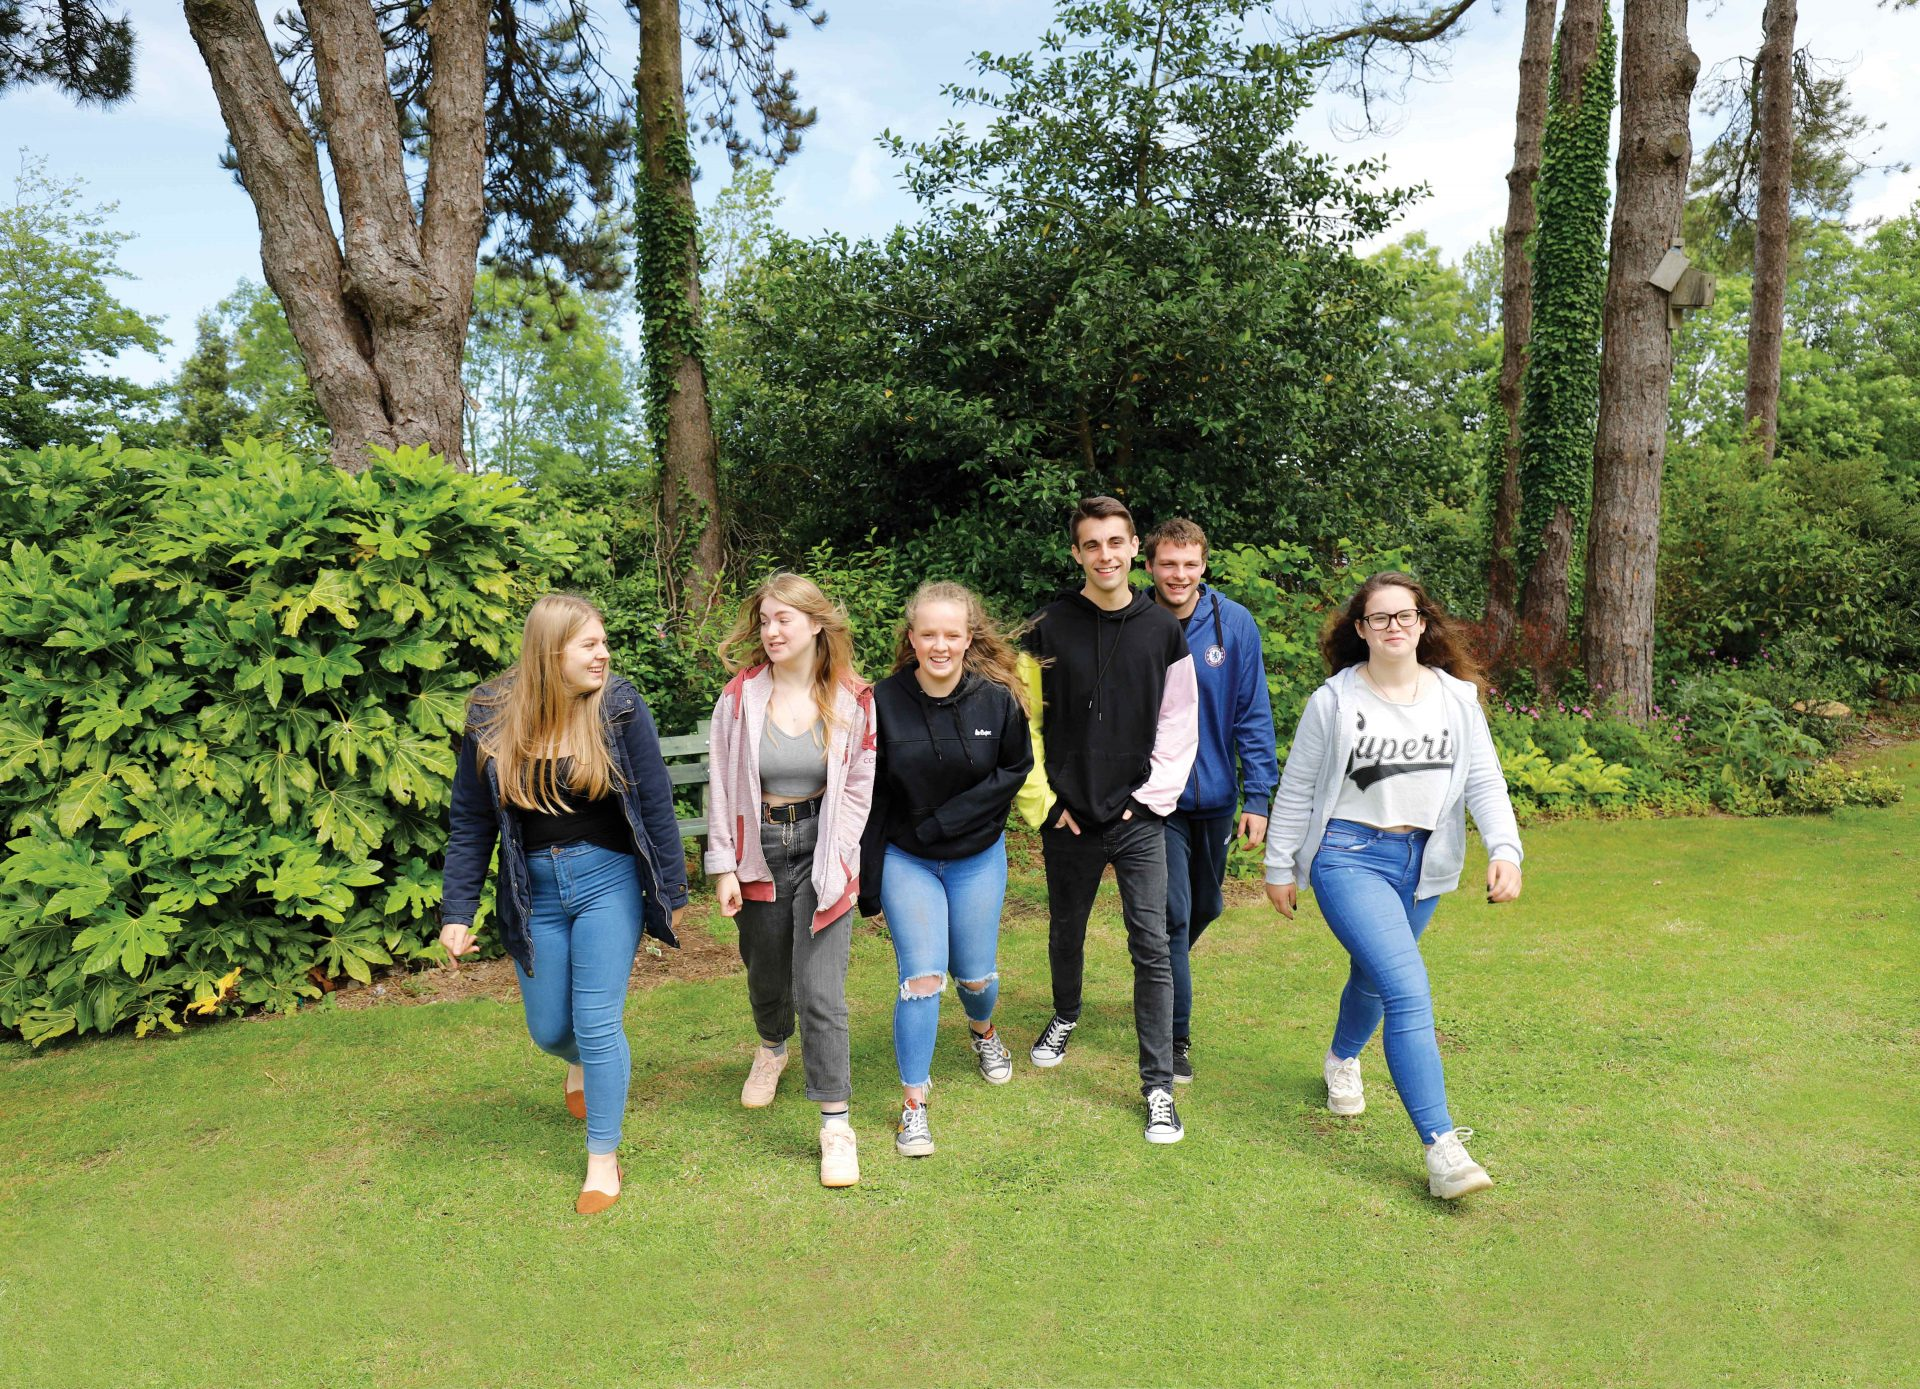 Students smiling as they walk towards the camera at Duchy College